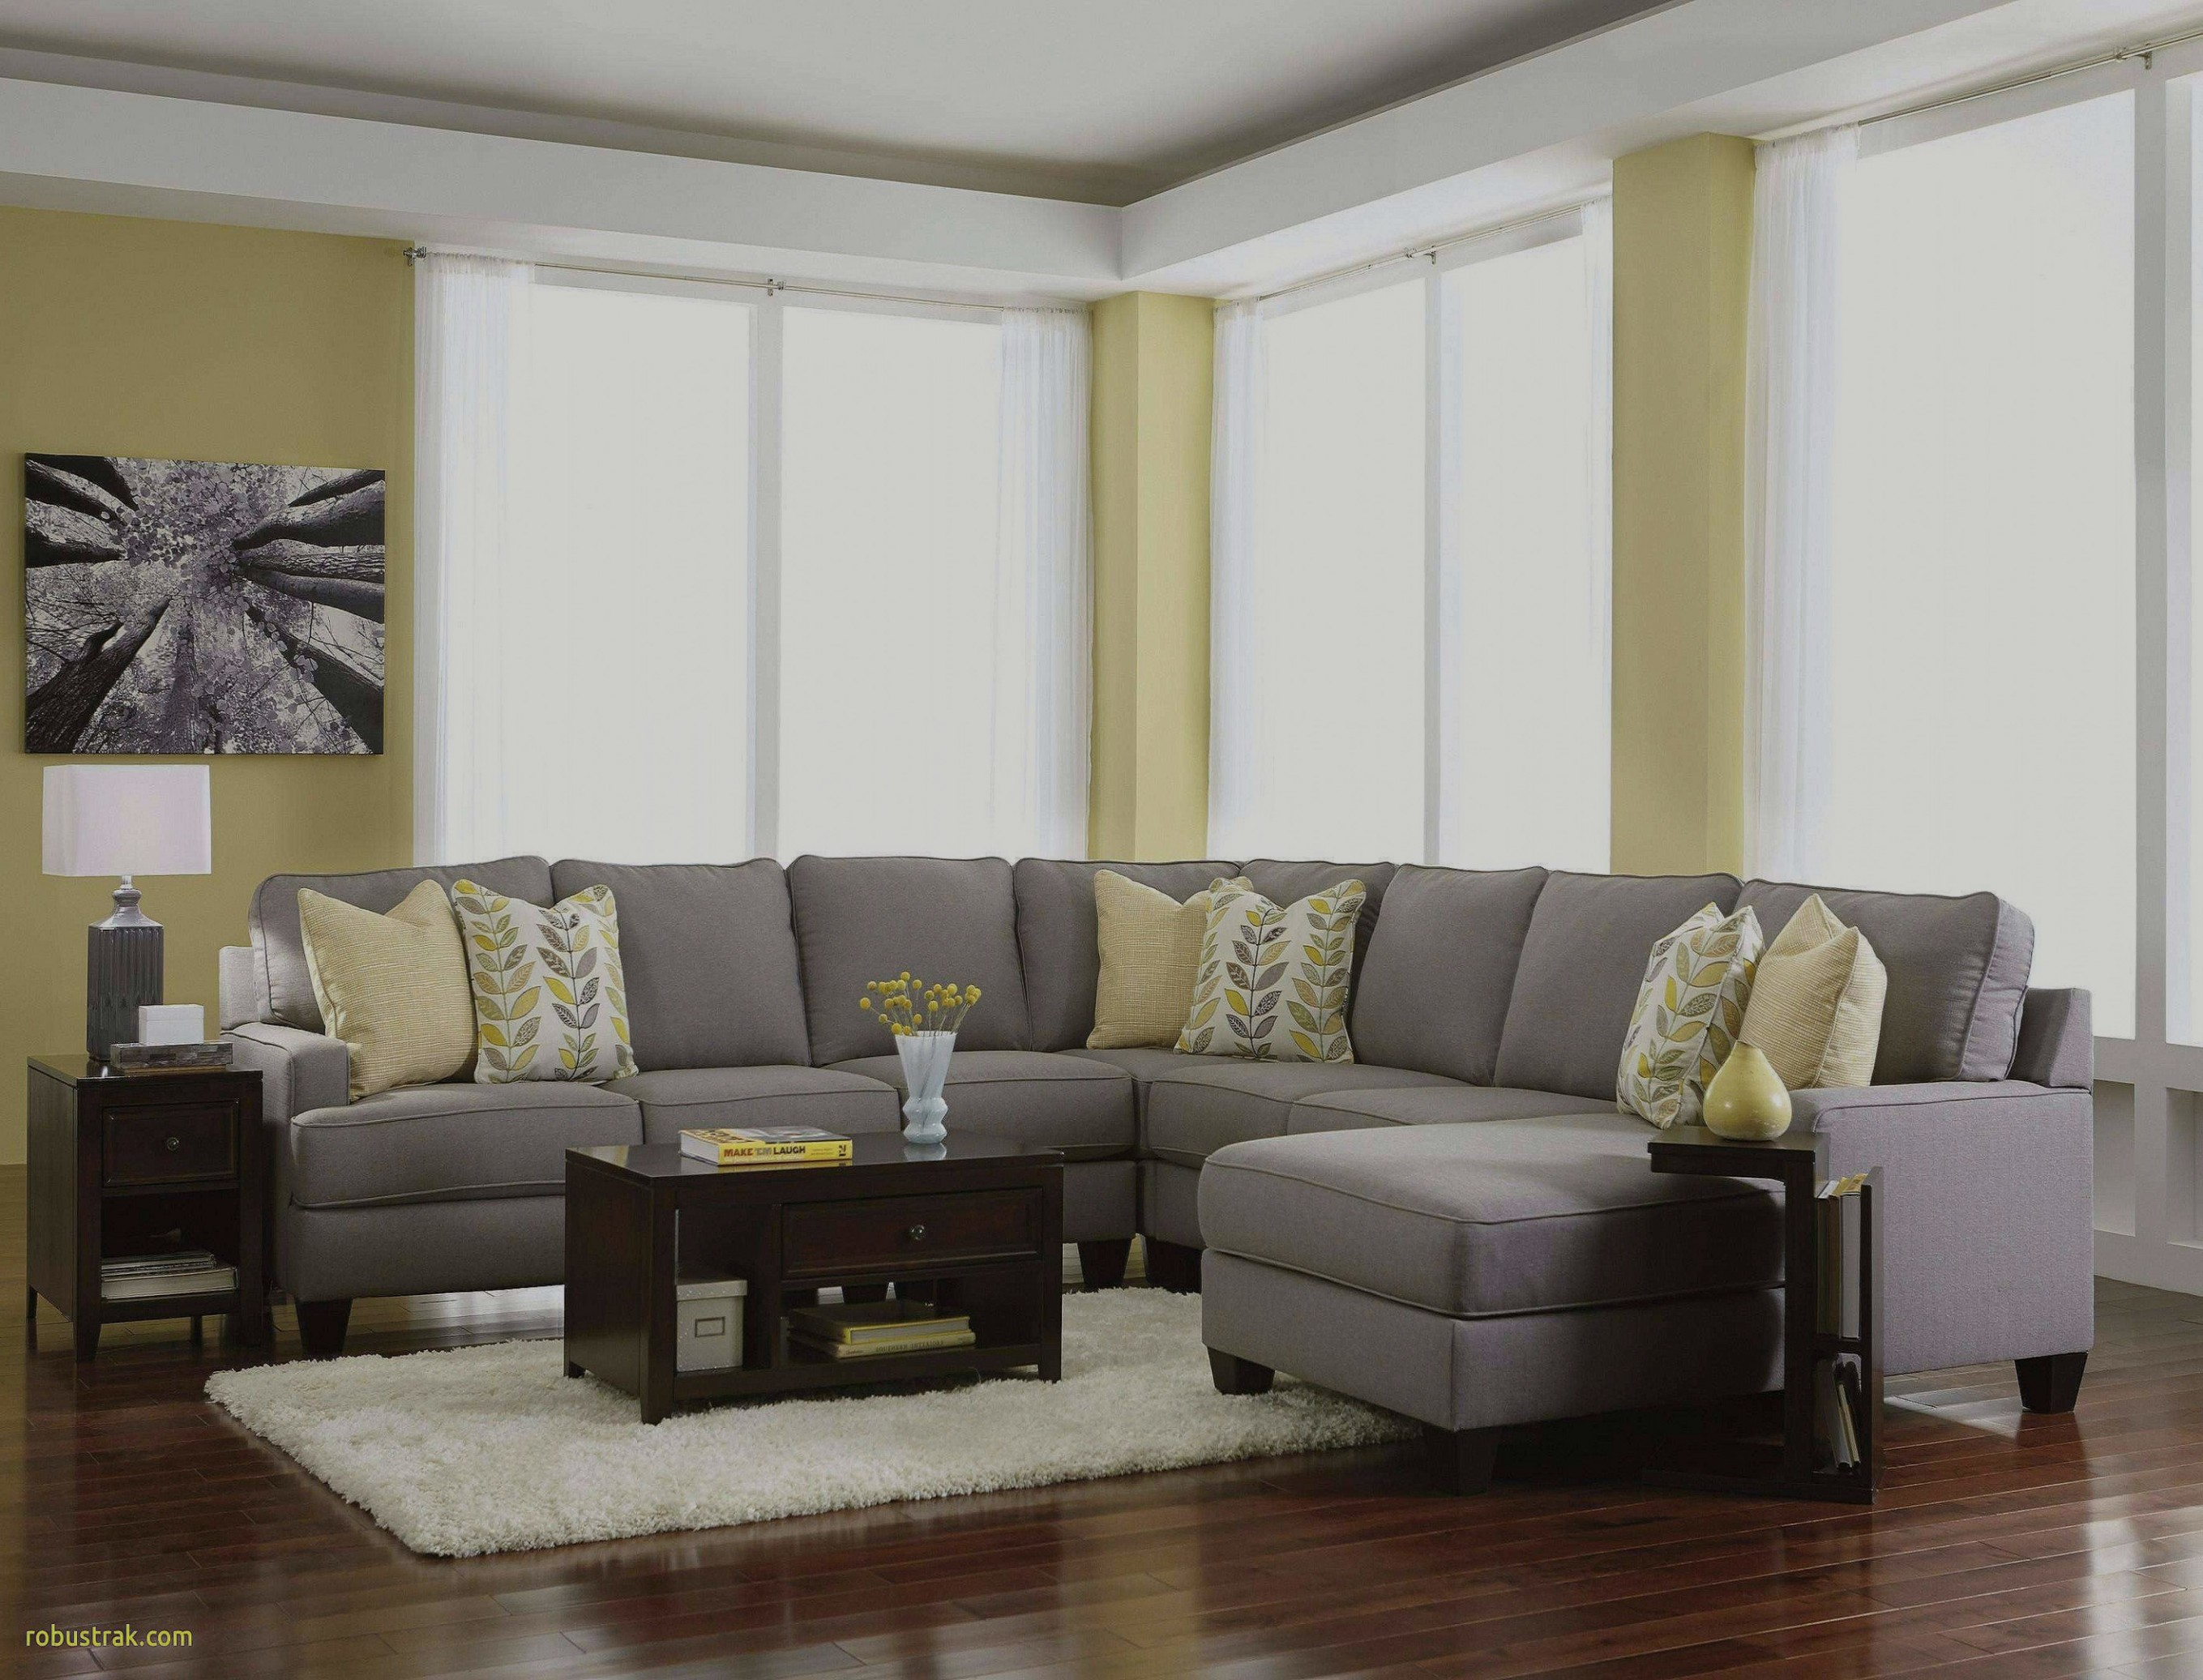 exotic coffee table best living room accent chairs fresh home design ideas accents mesmerizing brass and marble side top nightstand pier one art fruit drinks recipes small metal